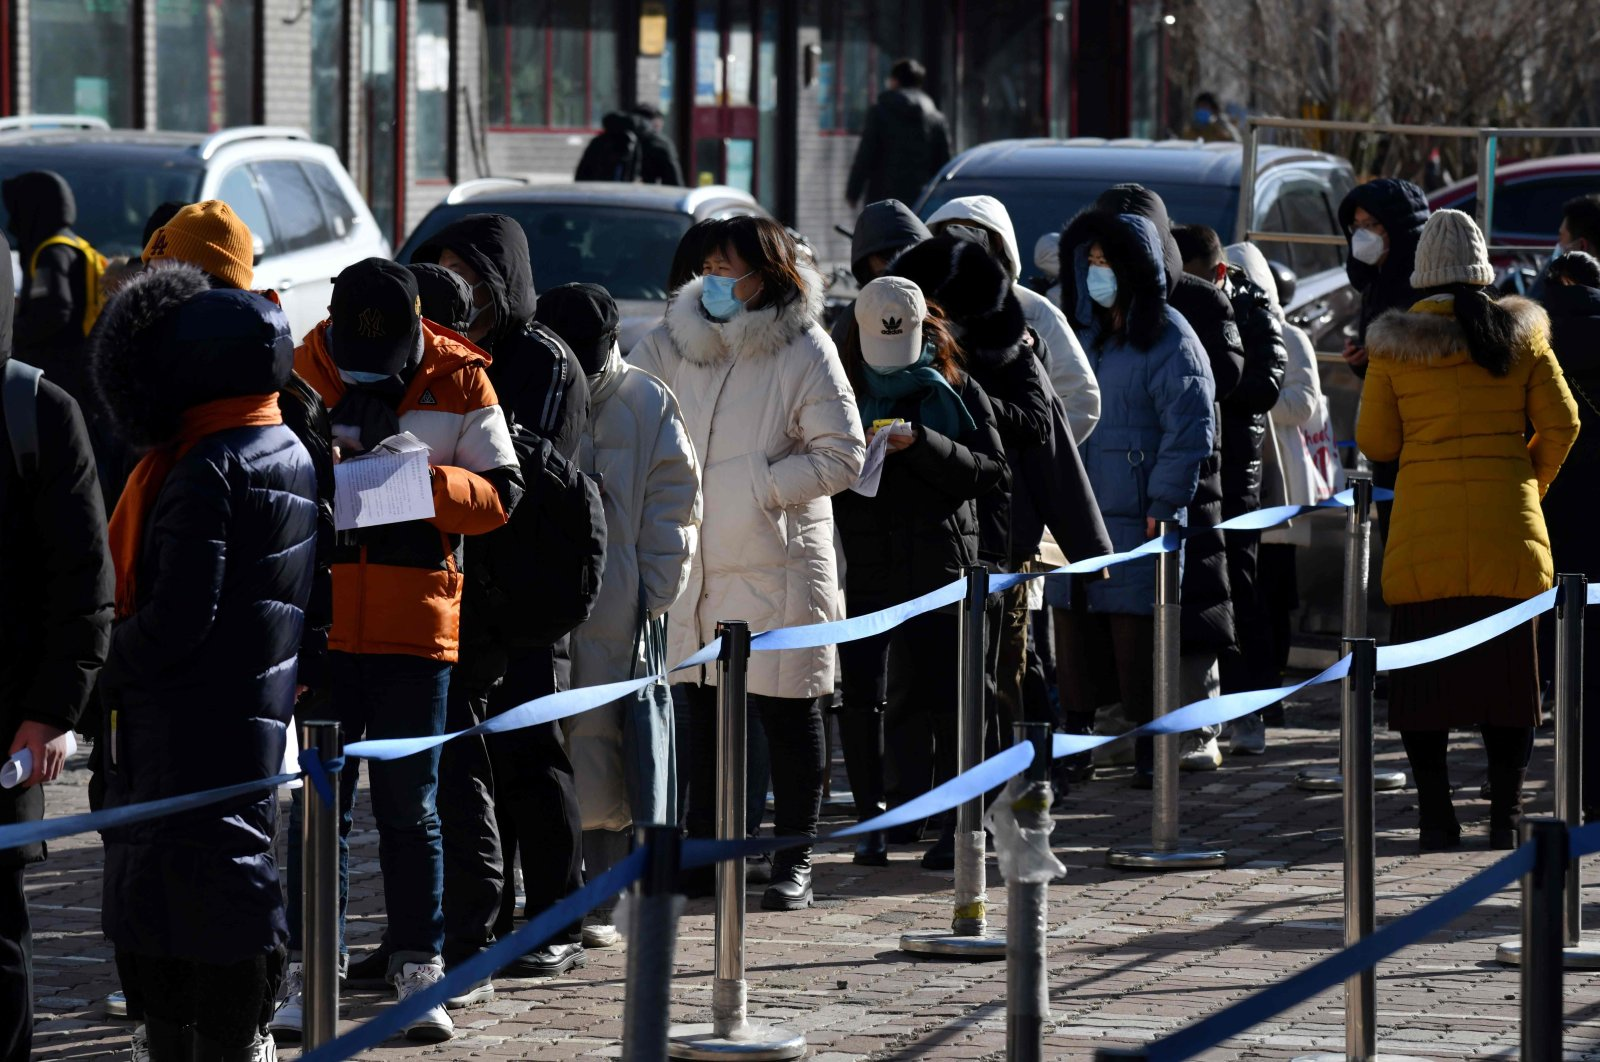 People line up to be tested for COVID-19 outside a hospital in Beijing on Jan. 28, 2021. (AFP Photo)